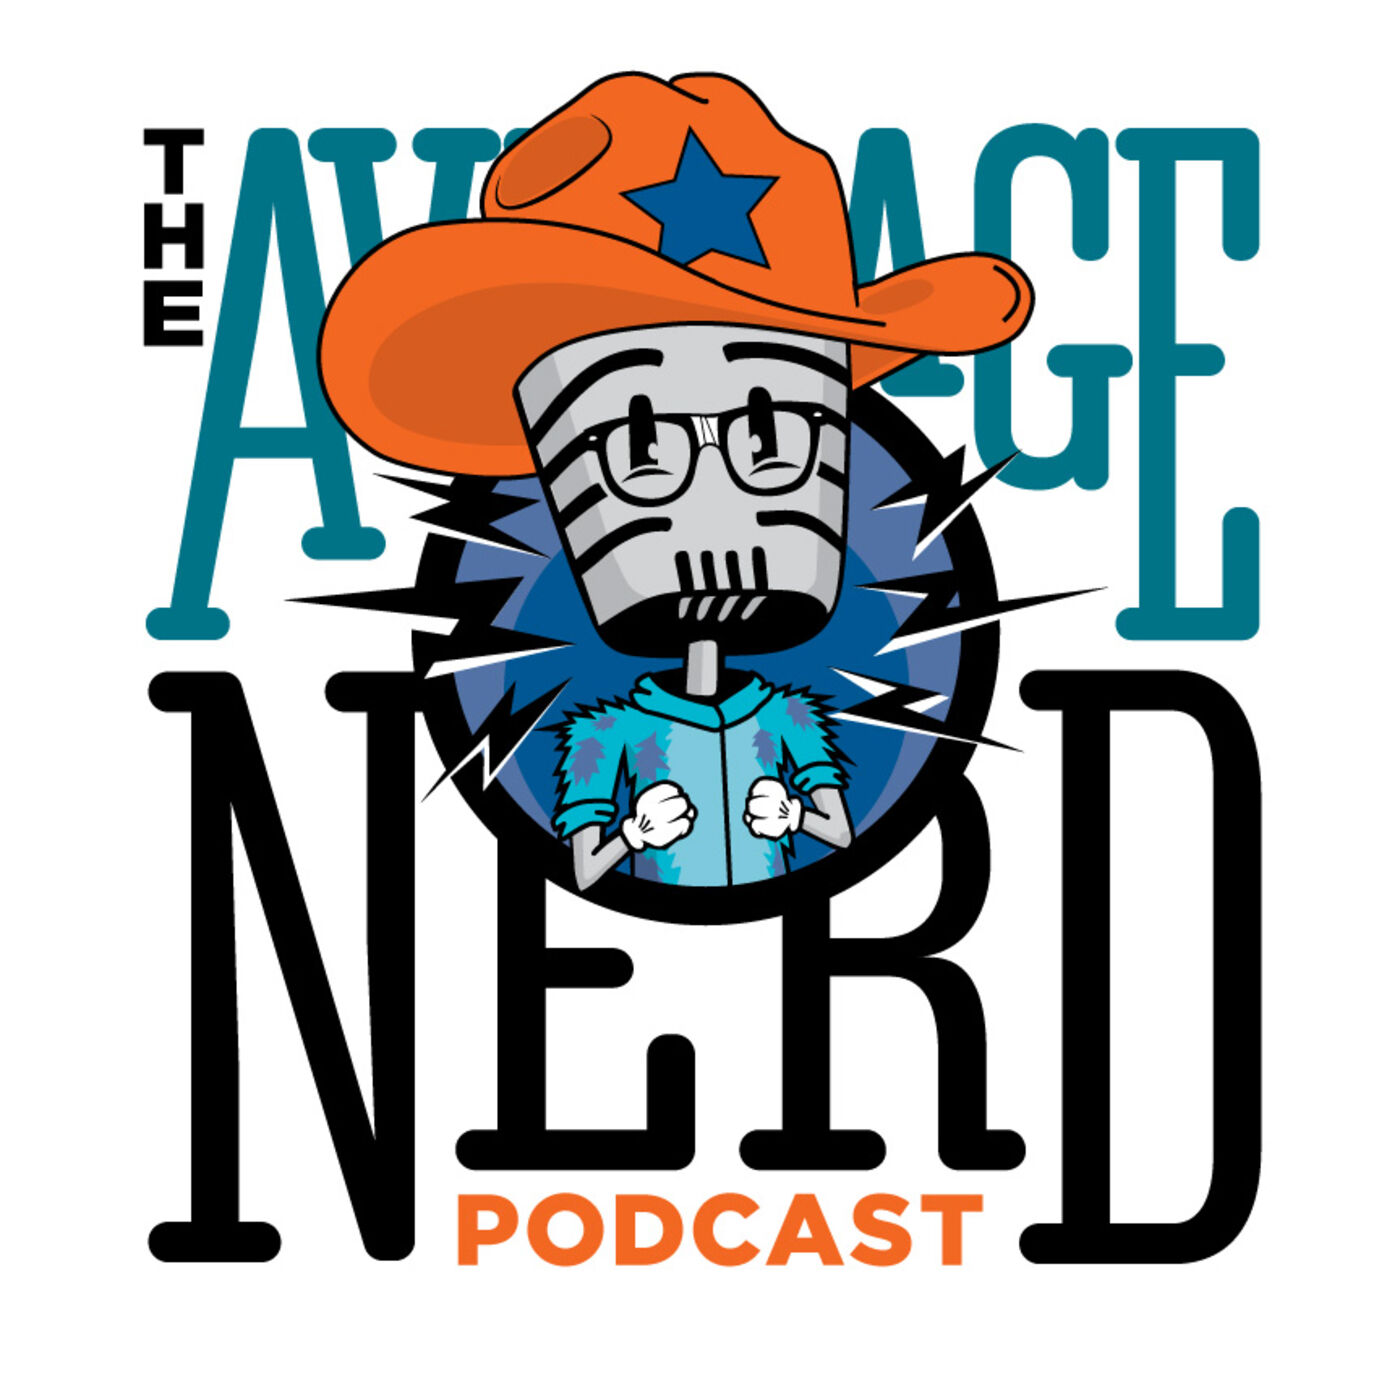 Episode 16: Sully, The Godfather of Nerds Unite